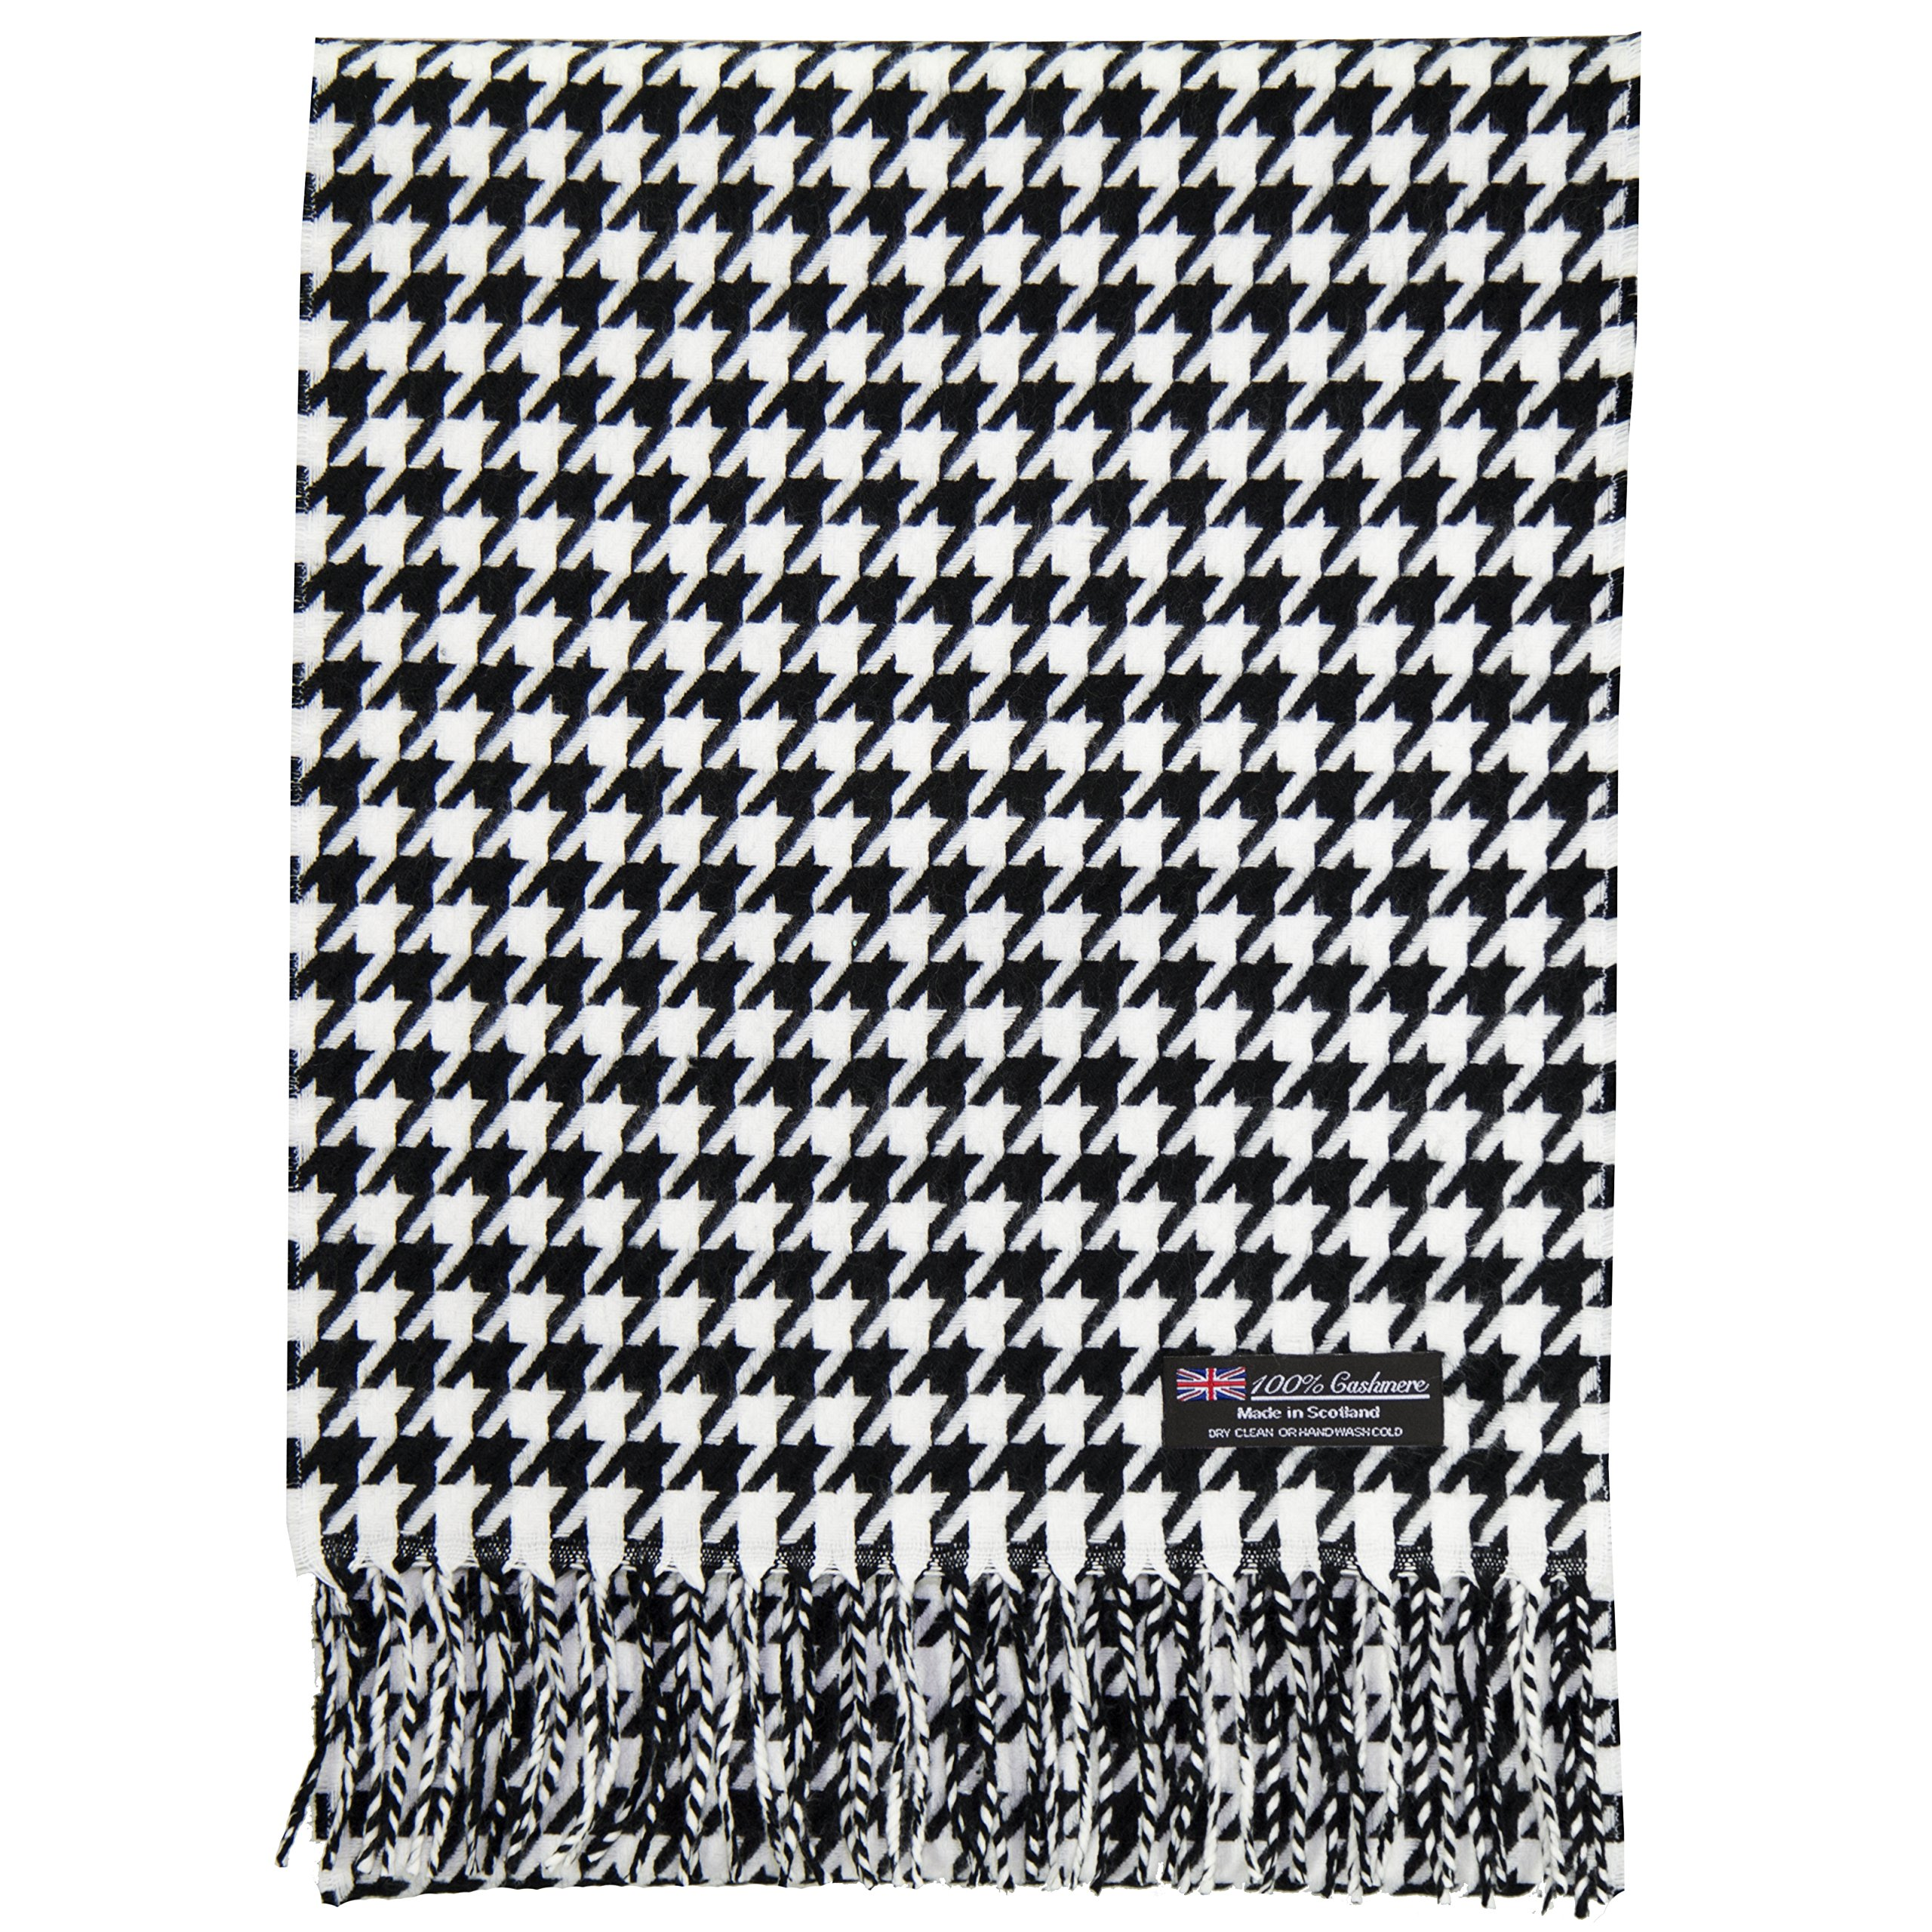 2 PLY 100% Cashmere Scarf Elegant Collection Made in Scotland Wool Solid Plaid (White Black houndstooth) by Cashmere Made in Scotland